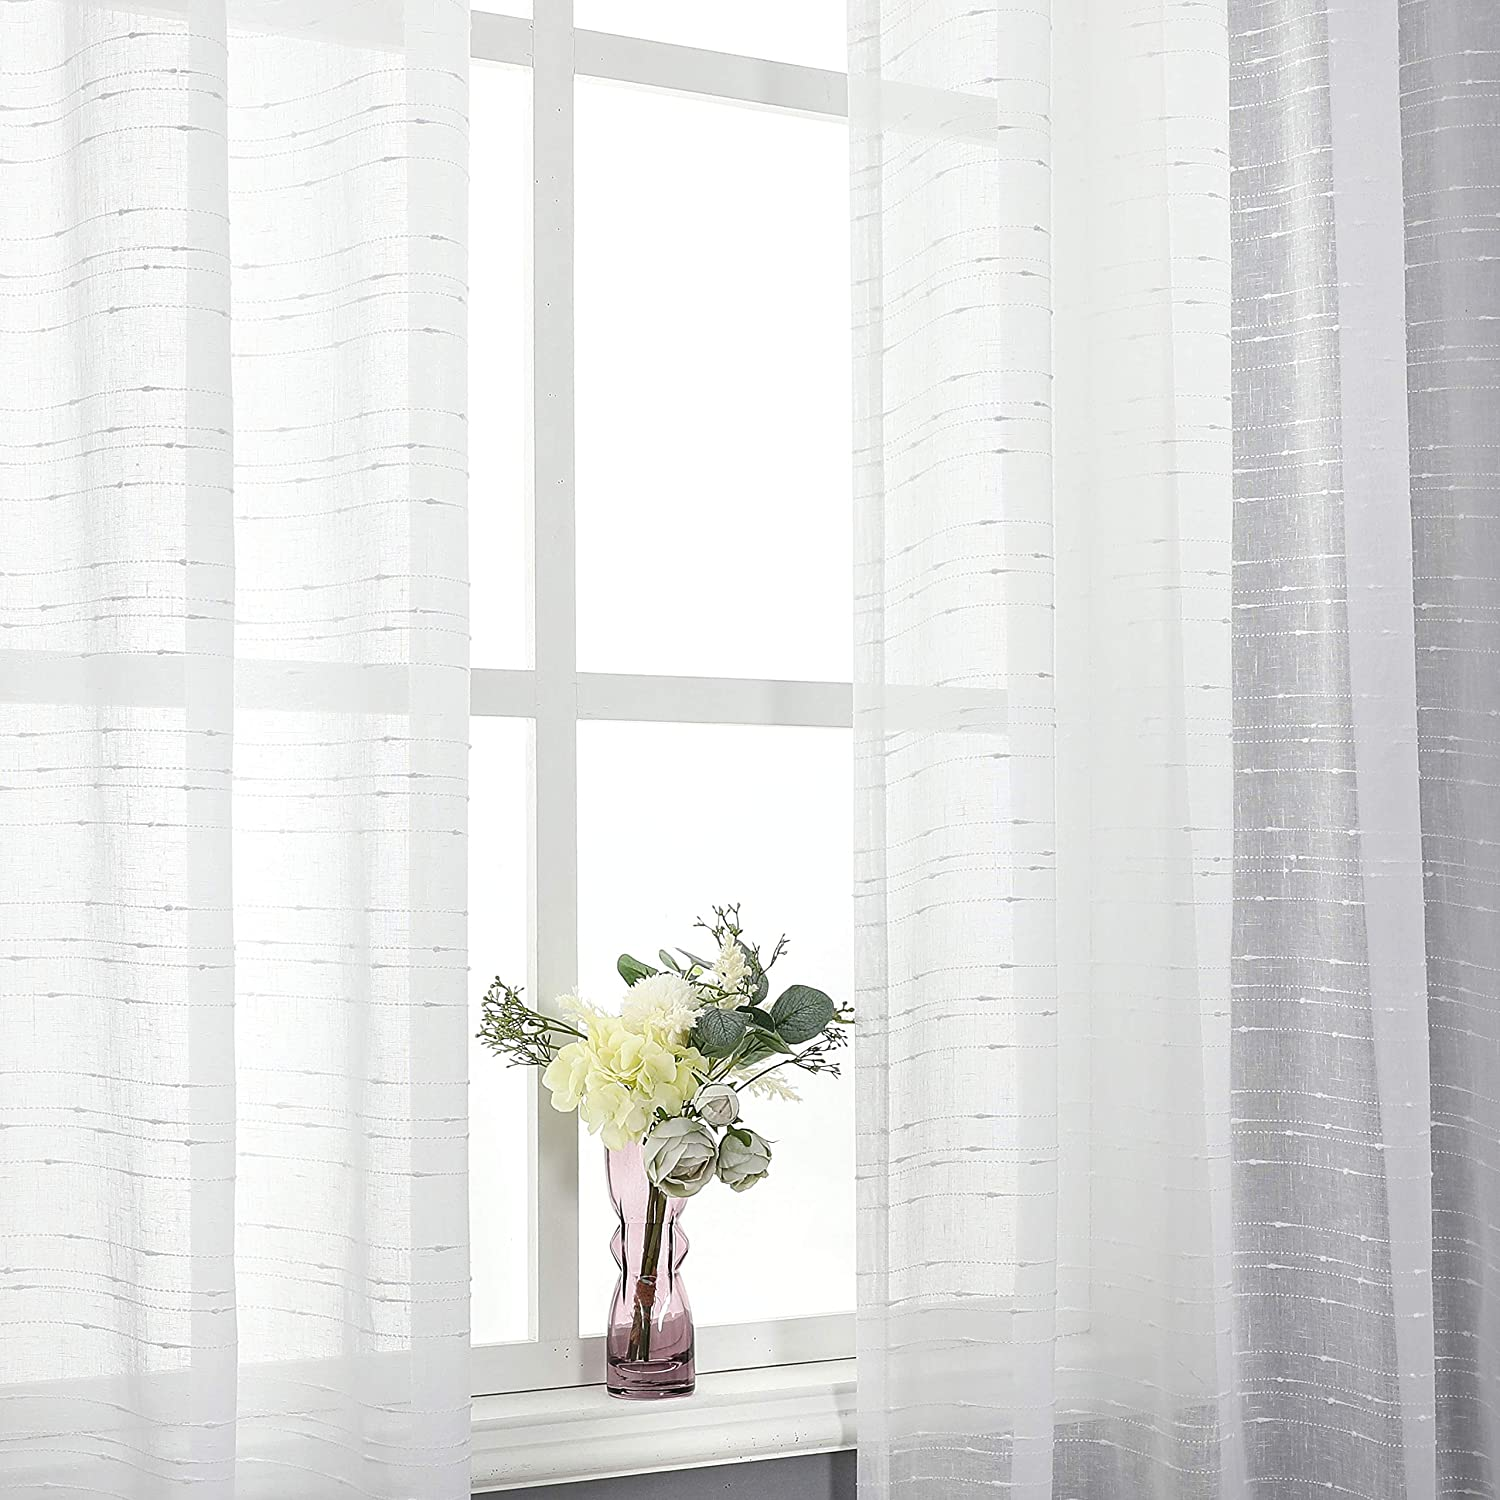 Caromio White Kitchen Curtains 2 Pack 26 Inch Wide X 24 Inch Long White Small Sheer Tier Curtains Cafe Curtain Set Rod Pocket Bathroom Window Curtain Tiers Curtains Drapes Ekbotefurniture Com